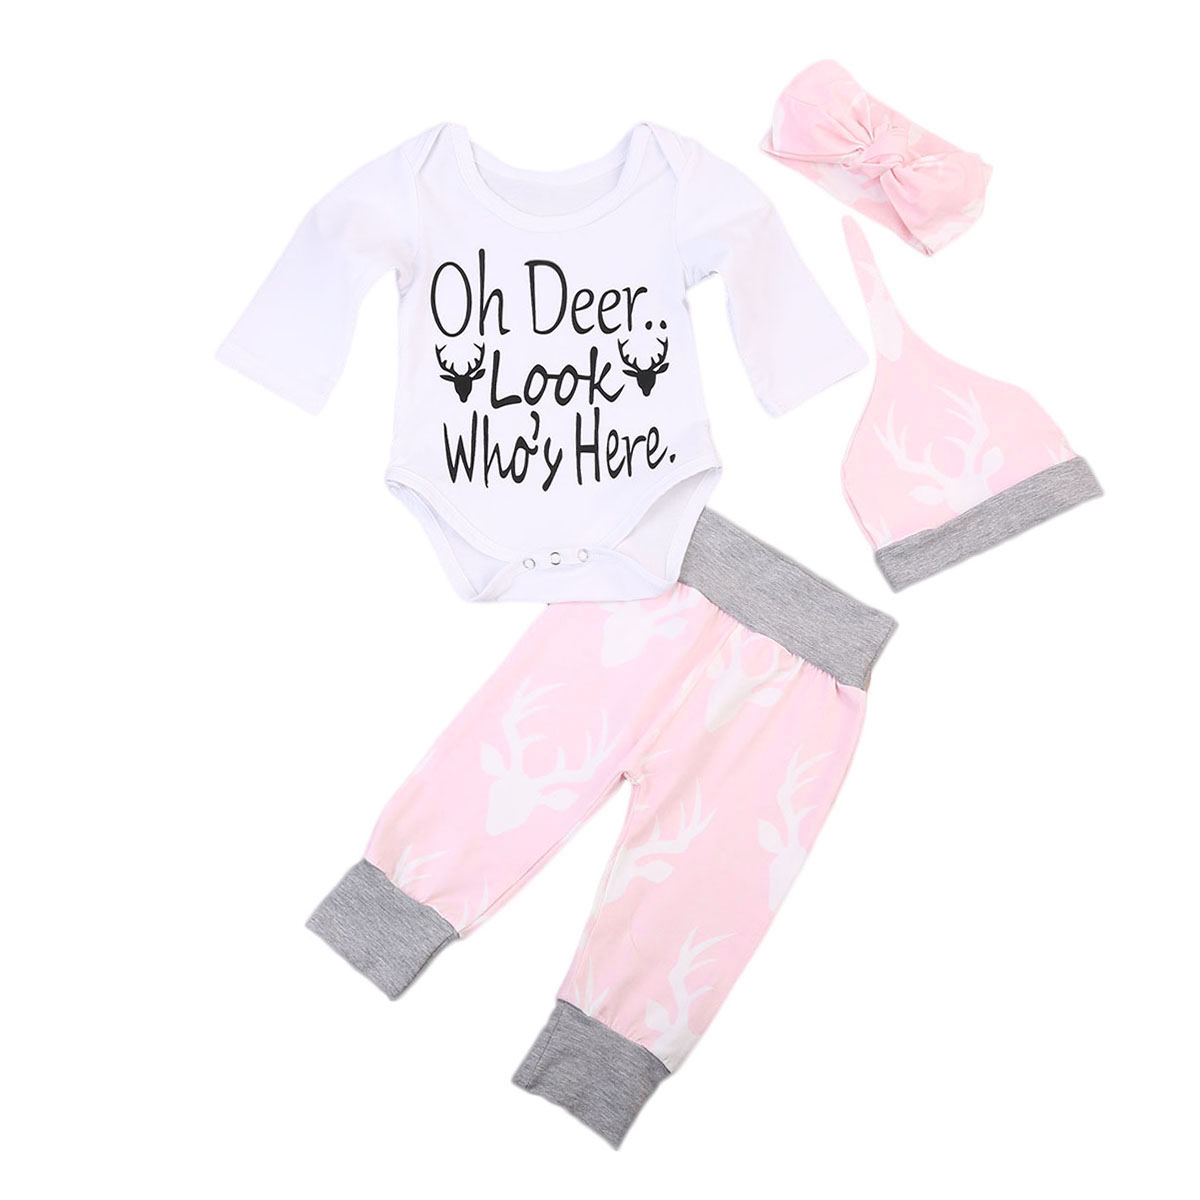 4Pcs Cute Newborn Baby Boy Girl Clothes Long Sleeve Romper+Long Pants+Headwear+Hat Casual Deer Printed Baby Sets